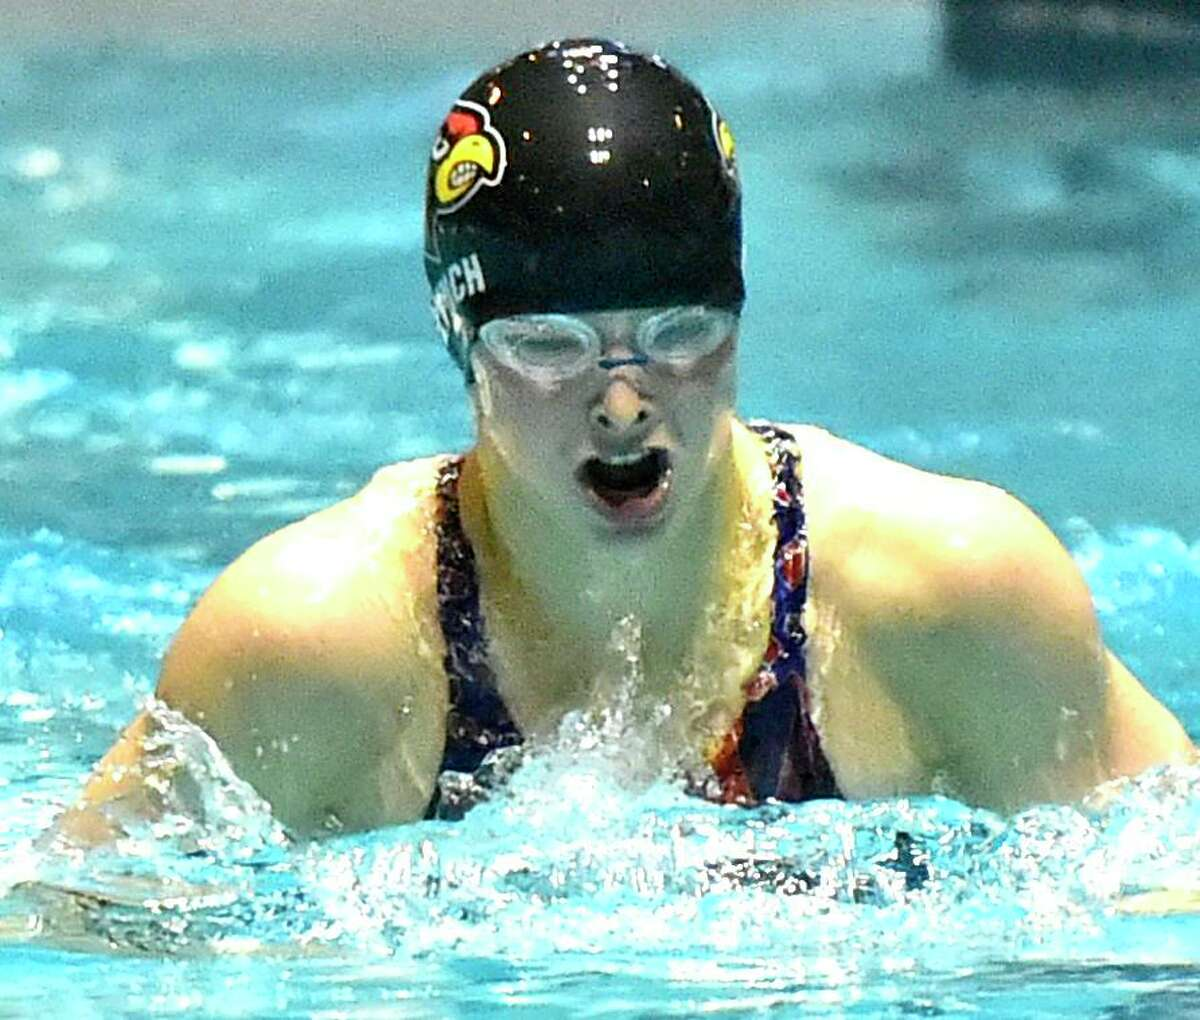 Meghan Lynch of Greenwich High swims the breaststroke to a state record in the 200 Yard IM during the CIAC State Open Girls Swimming Championship on Nov. 24 at Yale University in New Haven. Lynch is a senior co-captain.